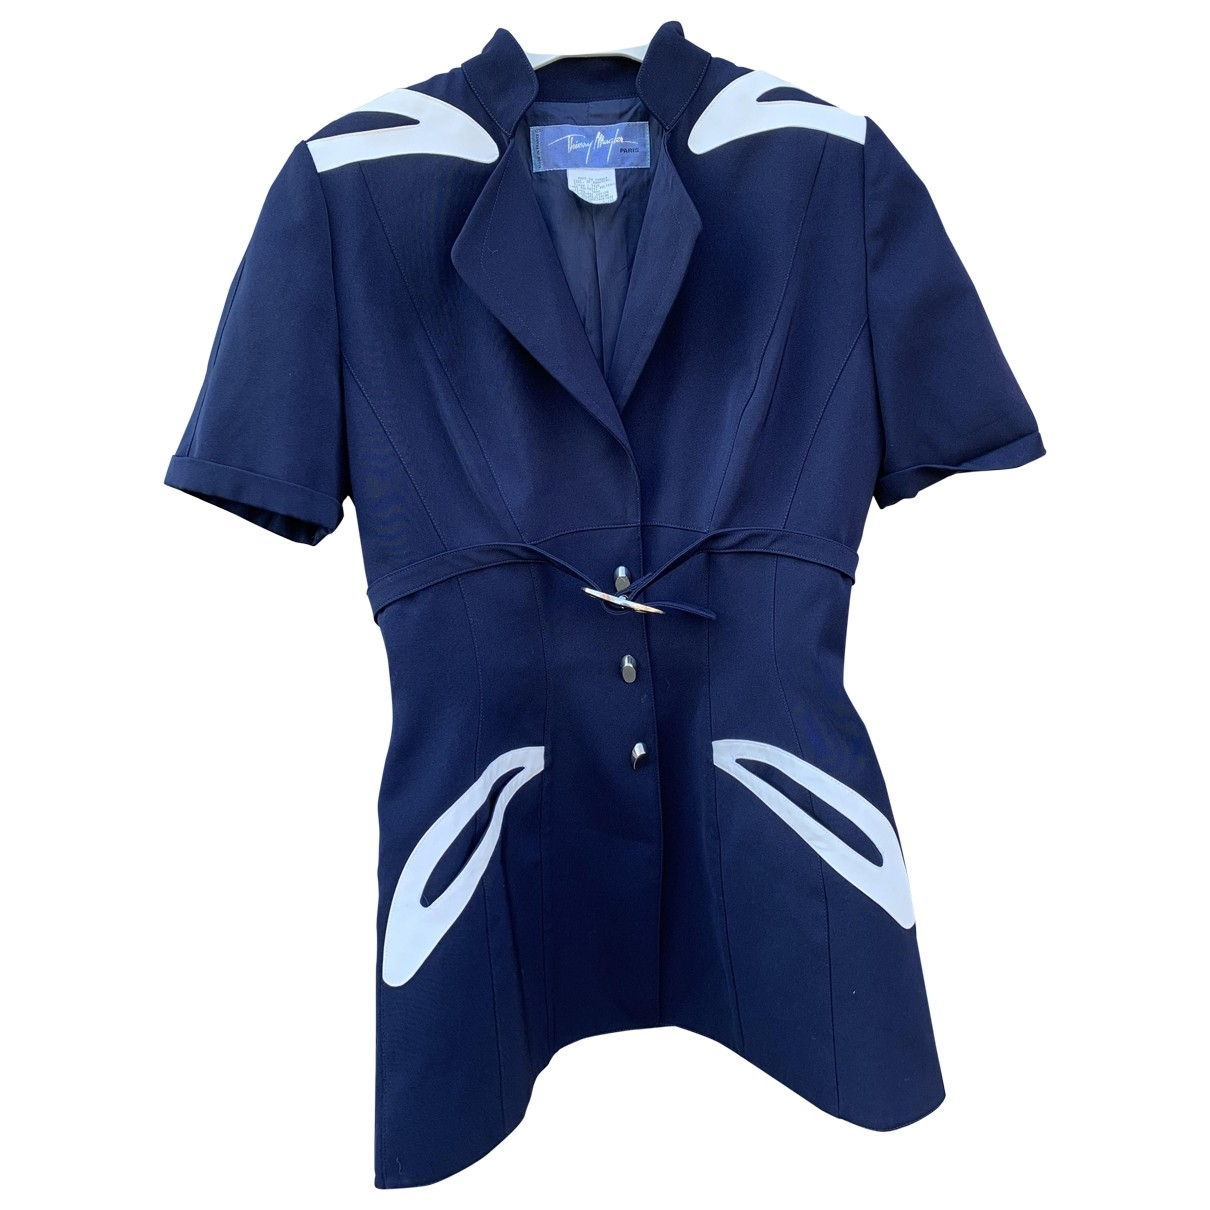 Thierry Mugler \N Navy Cotton jacket for Women 36 FR